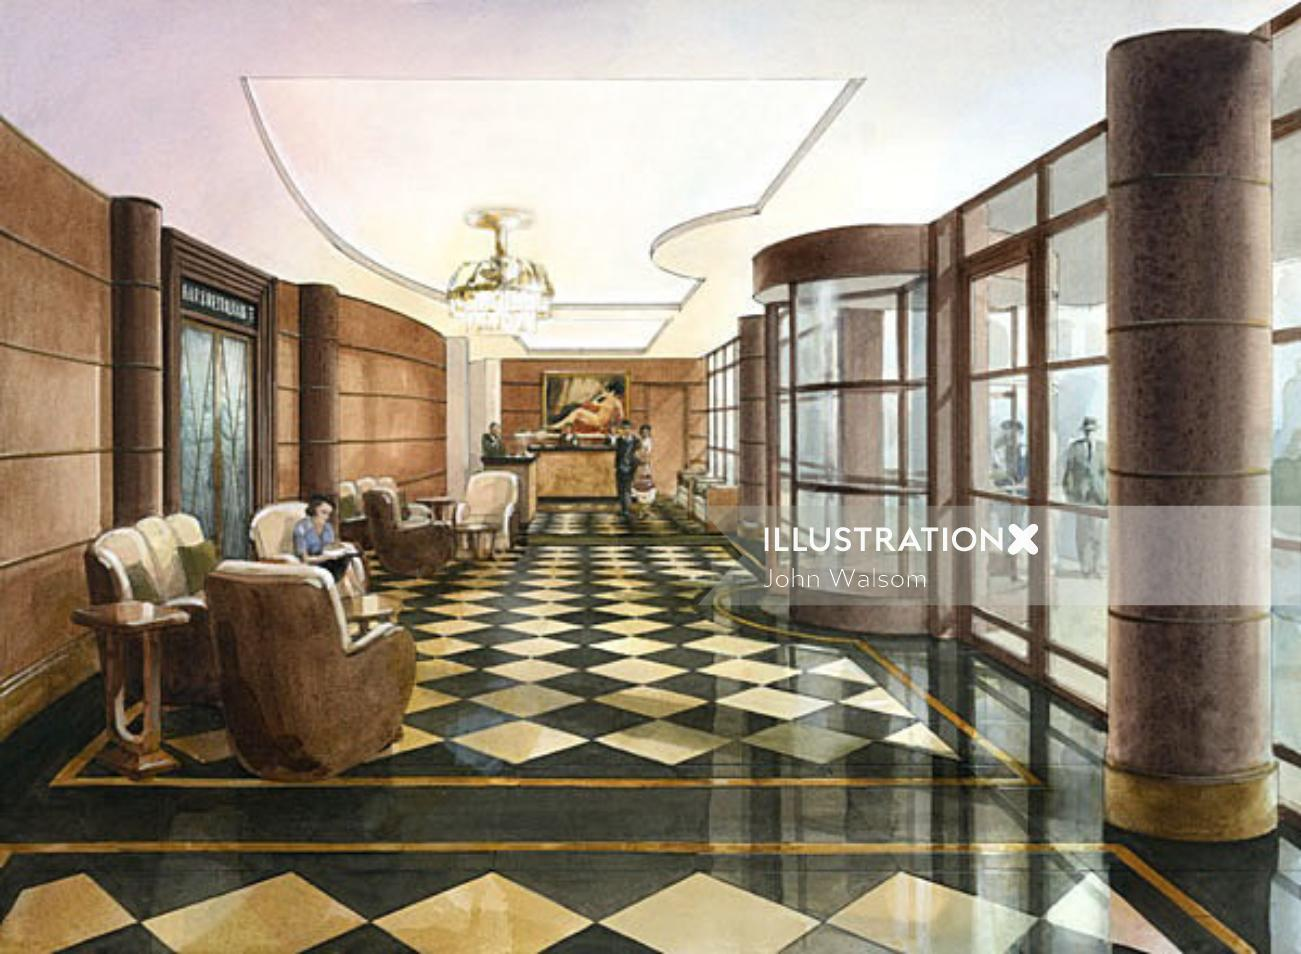 Lobby of the Beaumont hotel architectural illustration